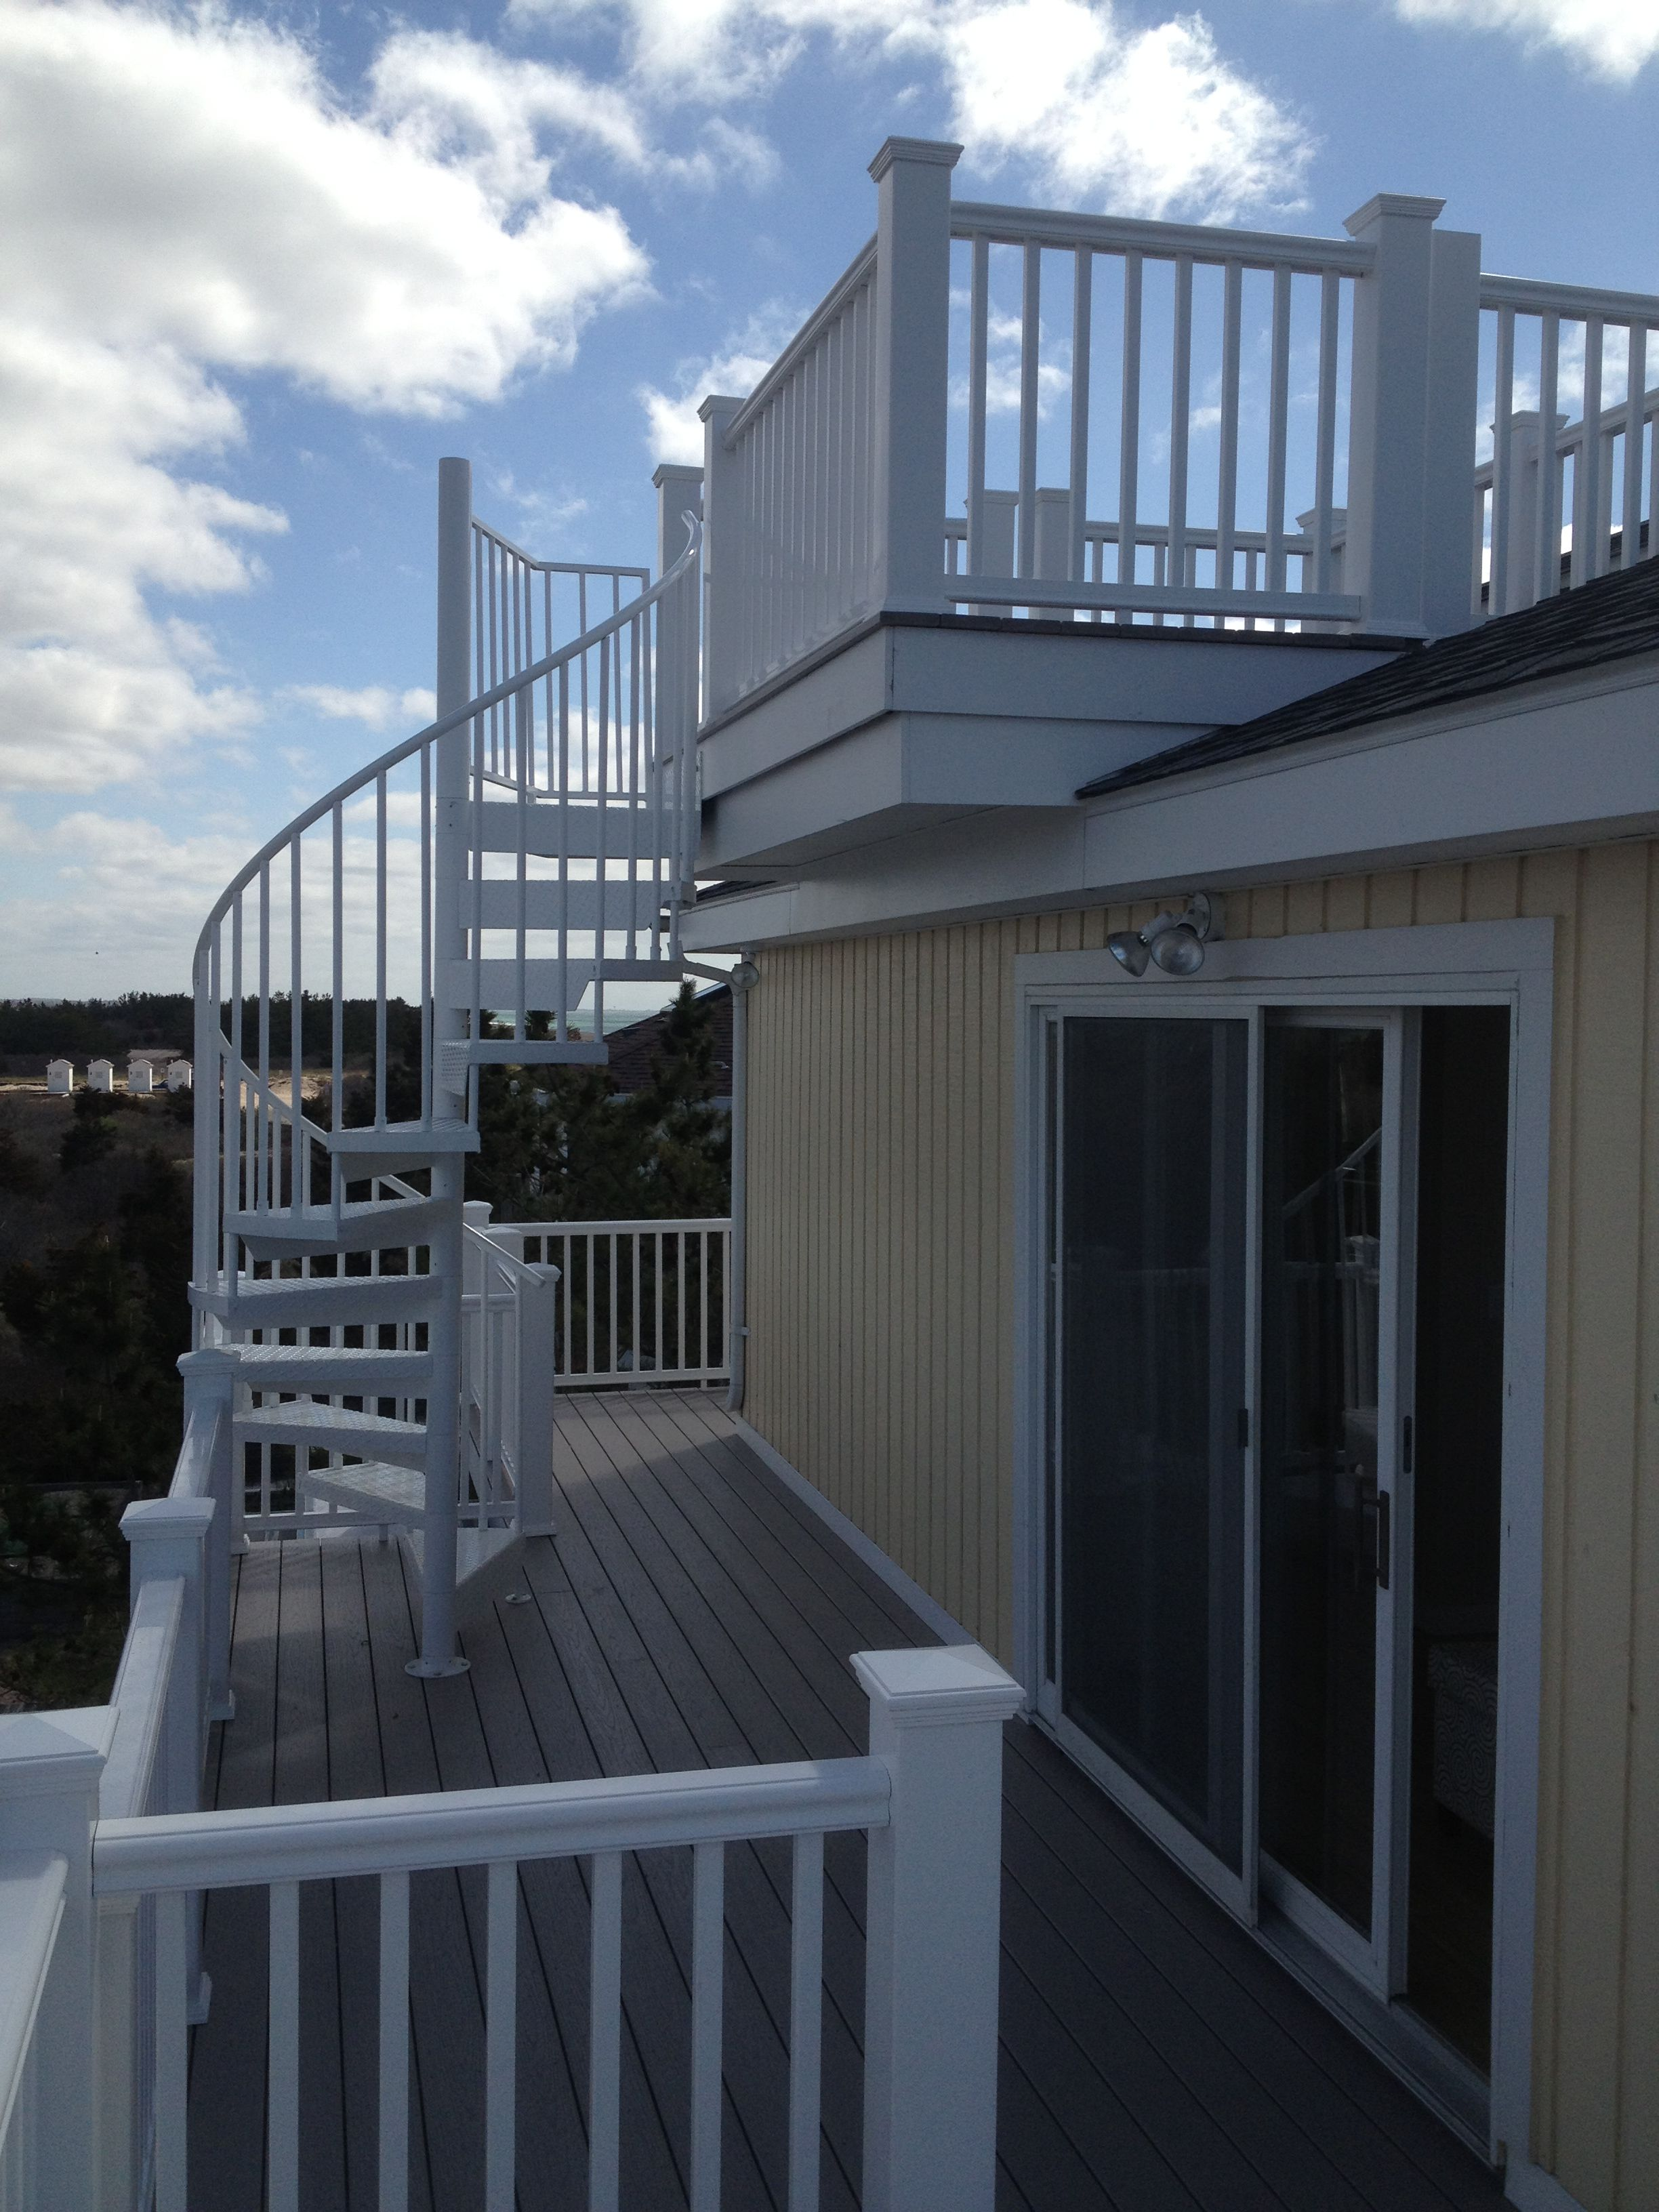 Aluminum Powder Coated Spiral Stair From A Rooftop Deck Stairs | 36 Inch Spiral Staircase | Steel | Staircase Kits | Building Code | Steps | Stair Case